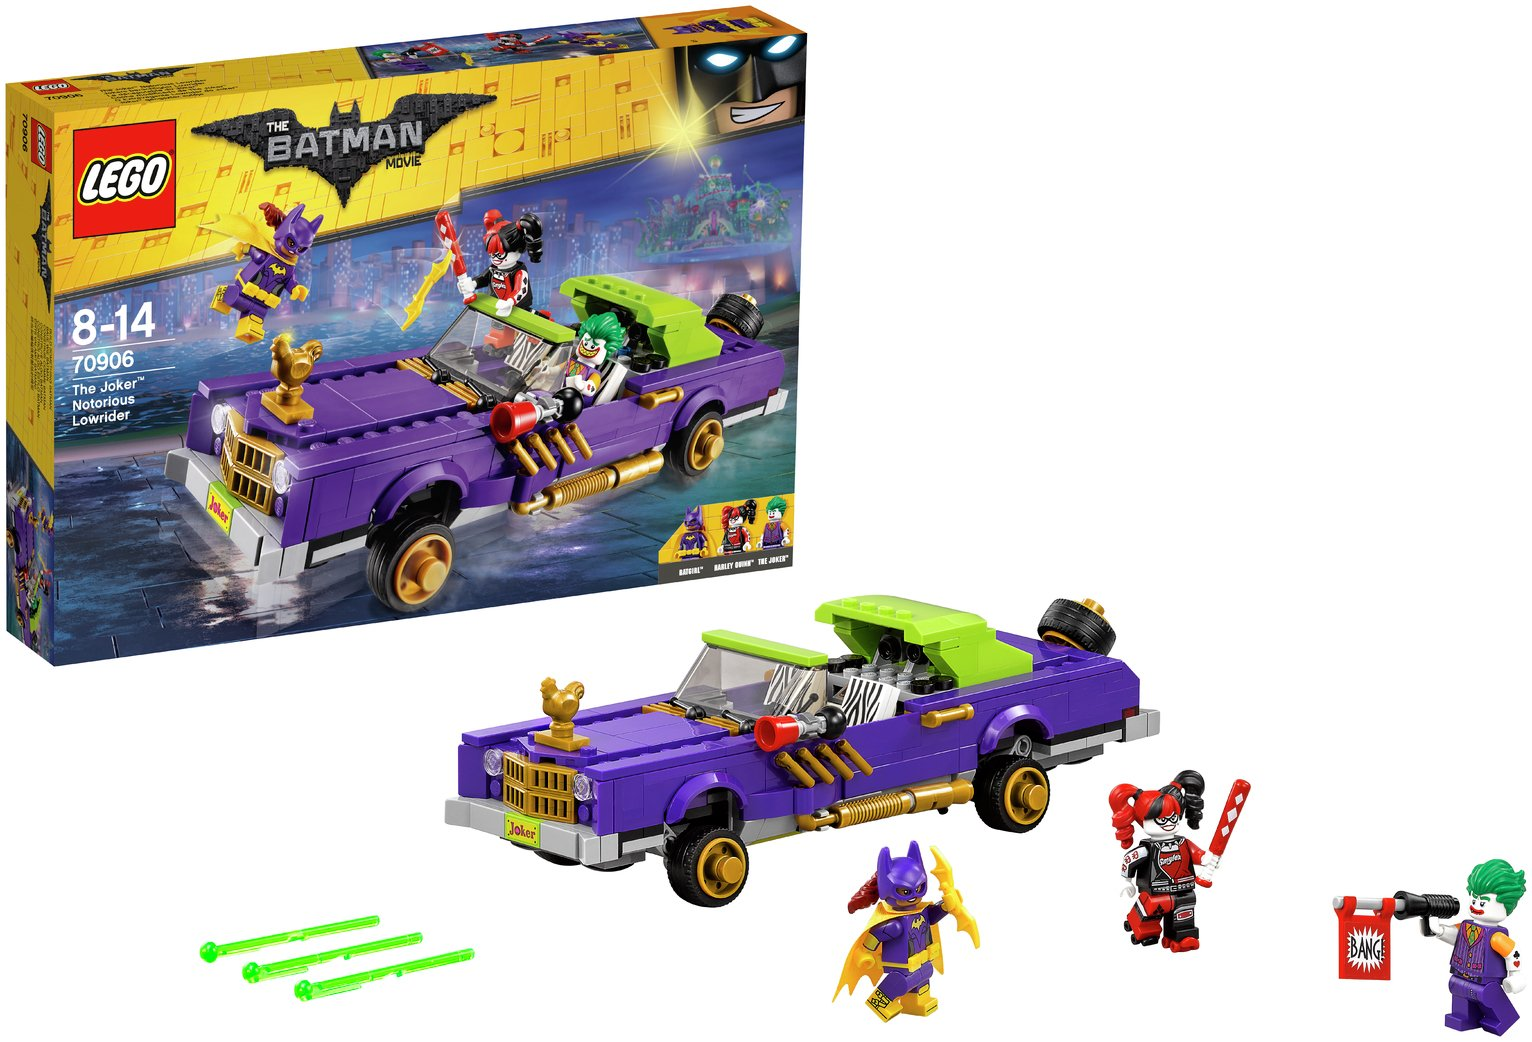 LEGO The Batman Movie Joker Lowrider - 70906